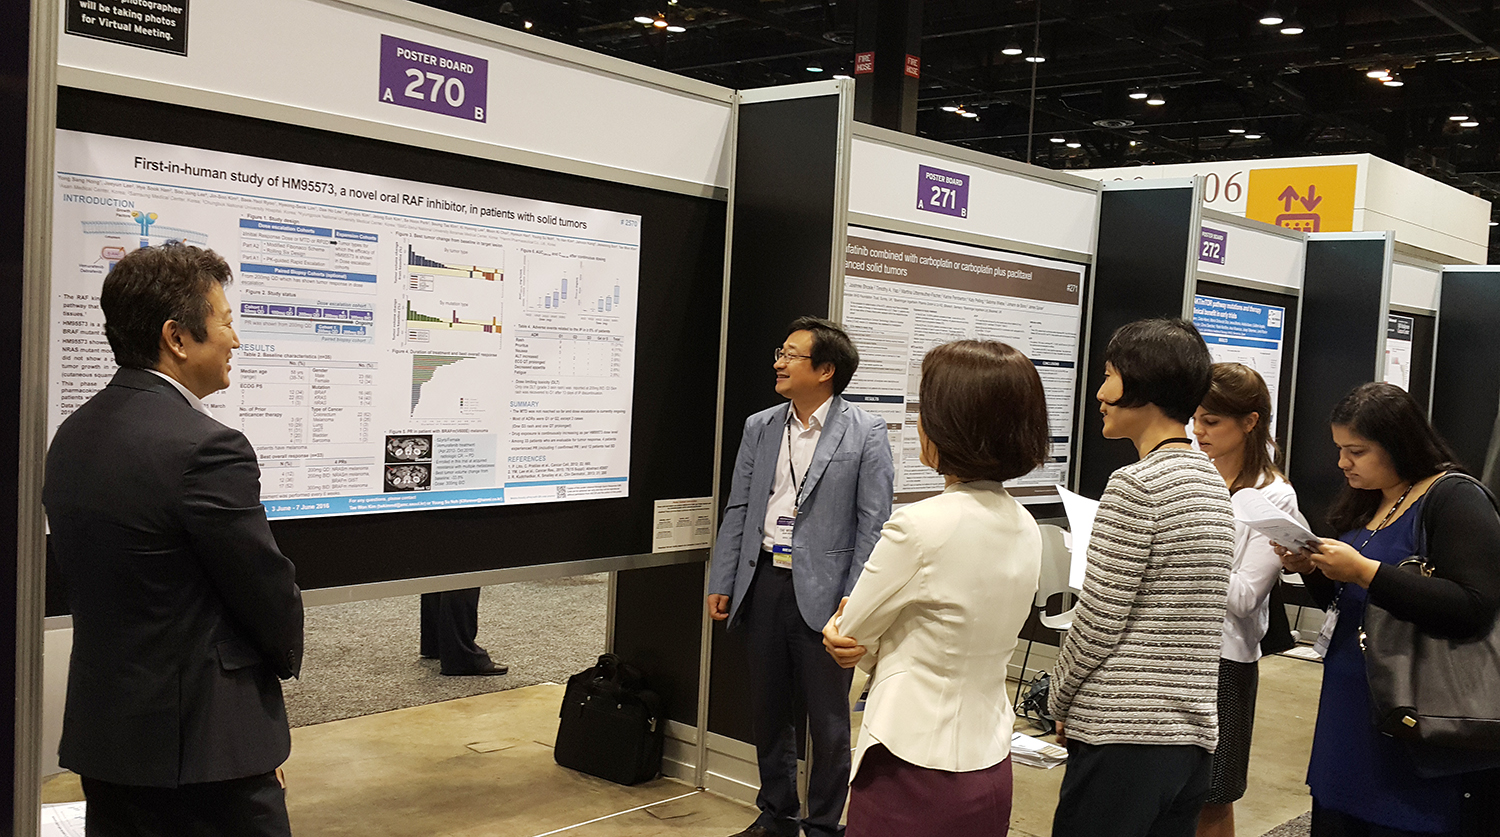 Hanmi presented the clinical trial results of two targeted anti-ancer drugs at ASCO.